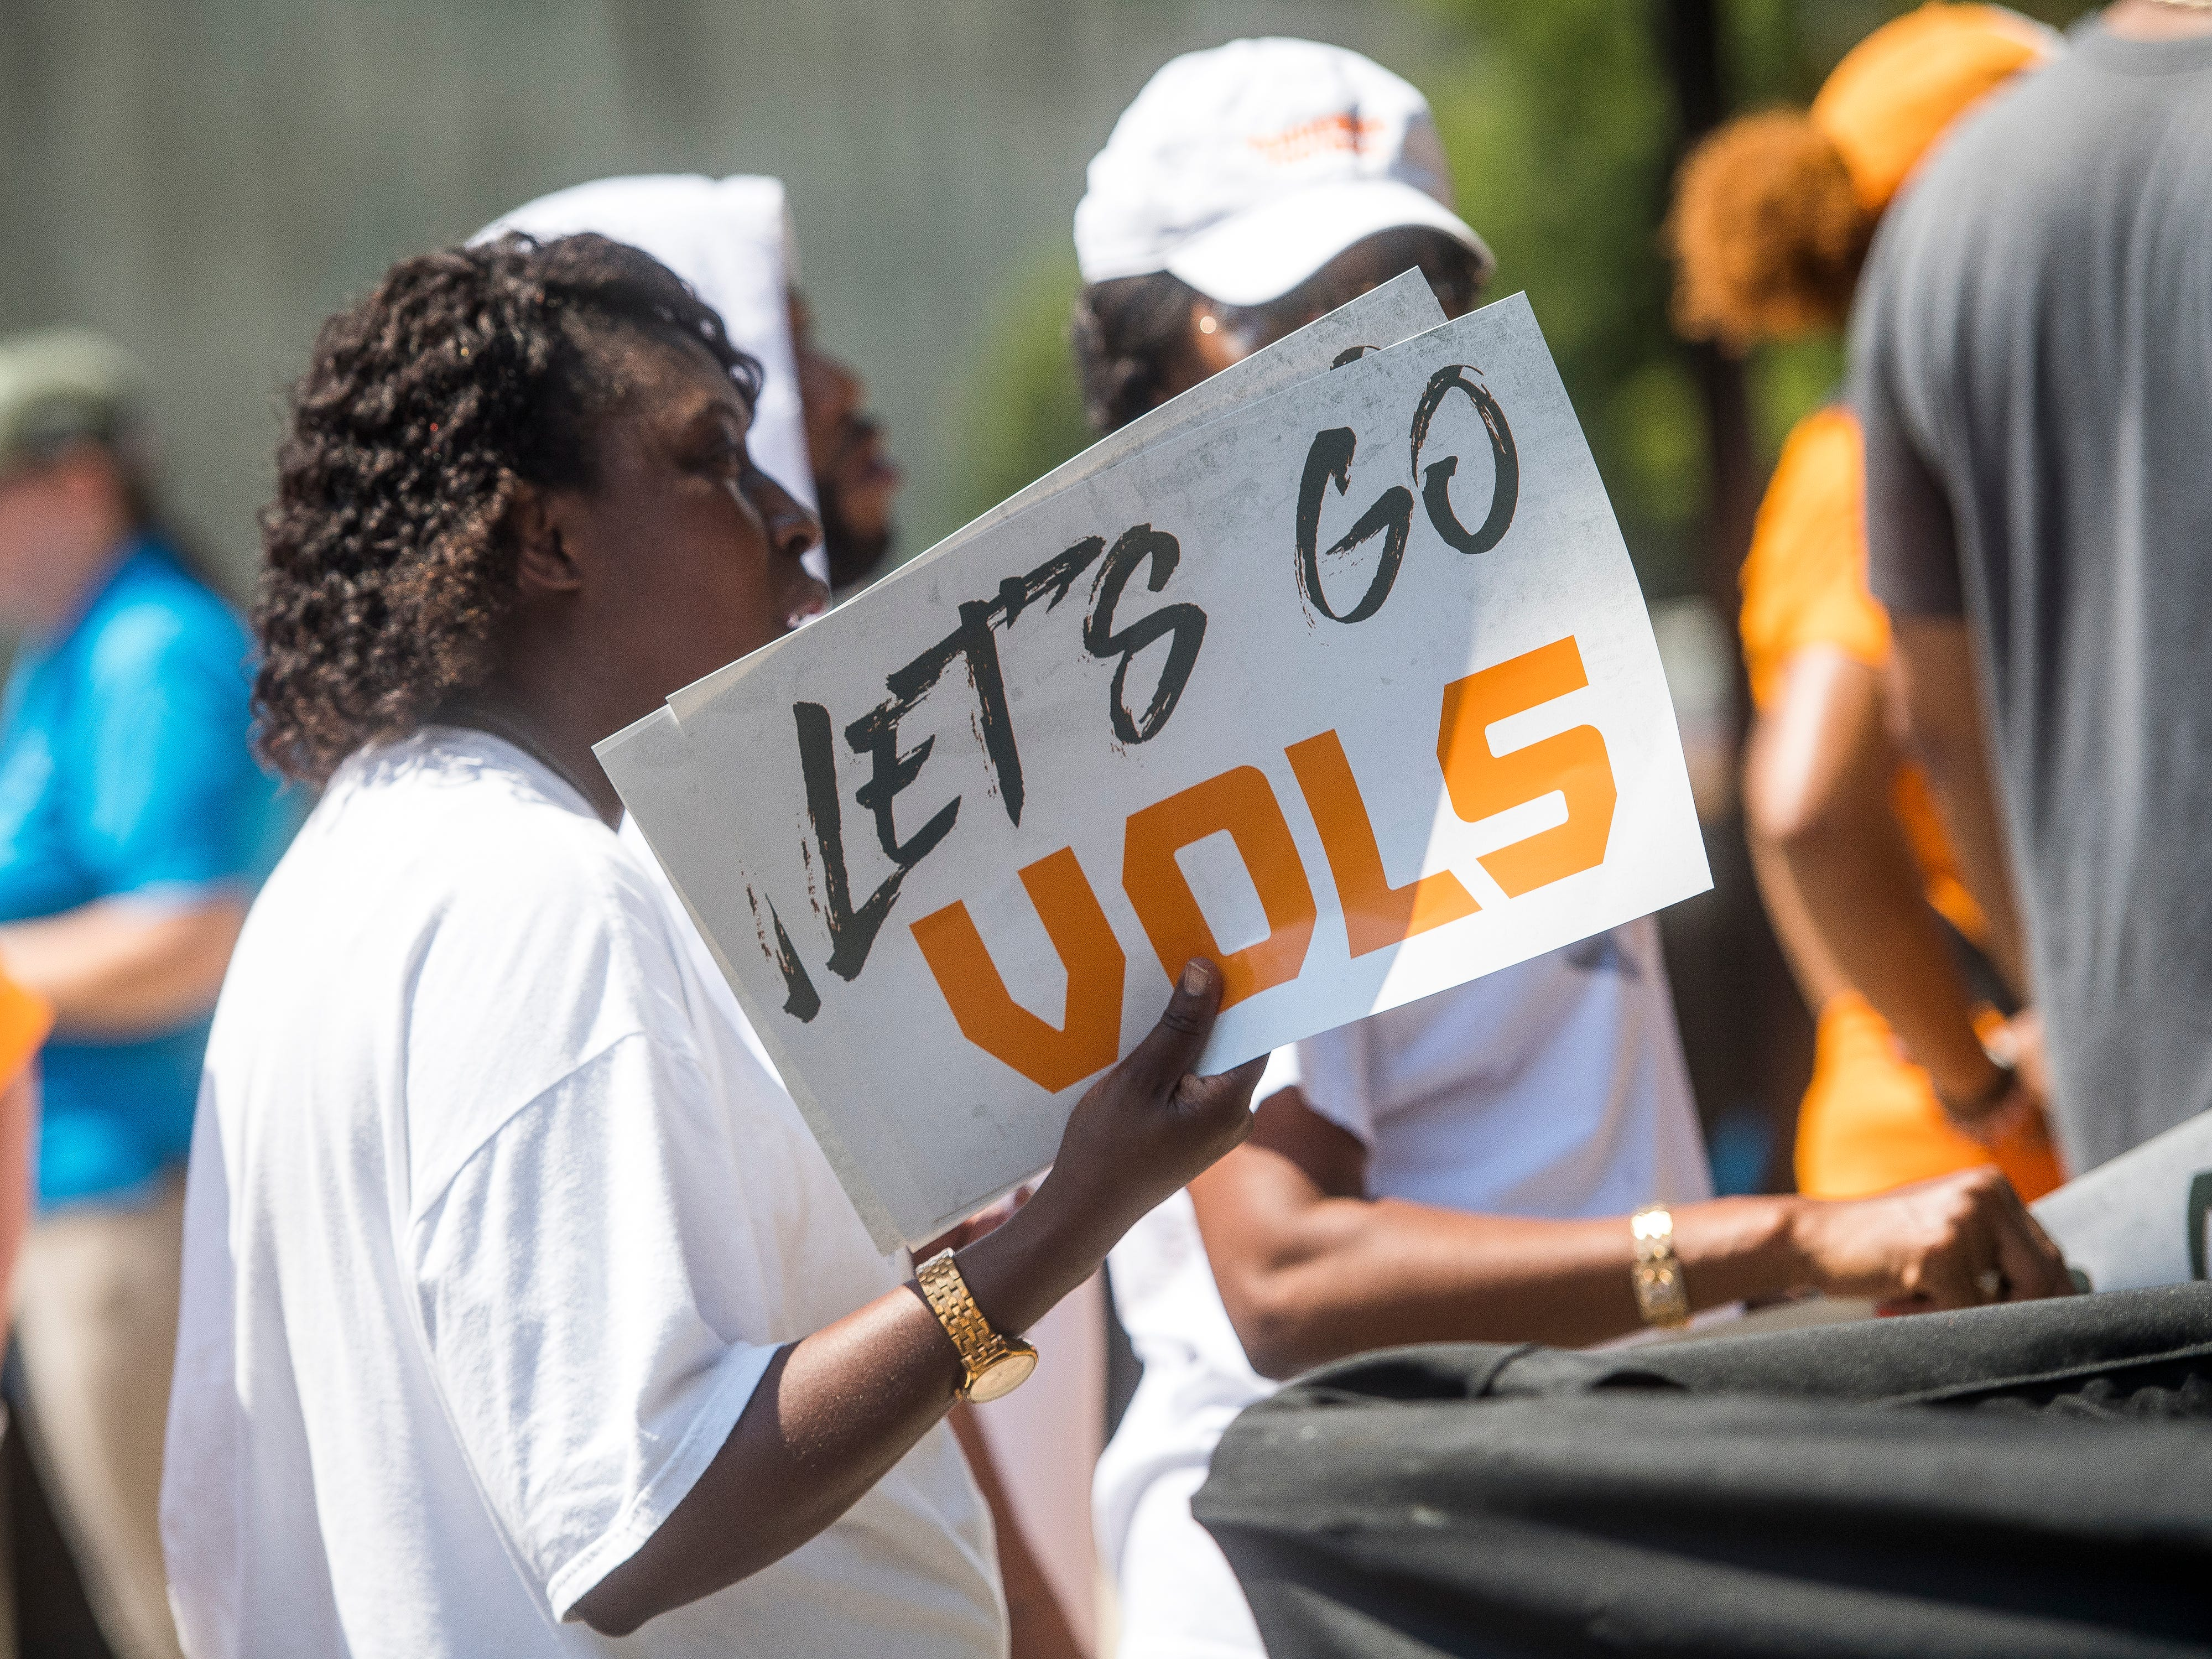 Fans use signs to fan themselves before the Tennessee Volunteers' game against West Virginia in the Belk College Kickoff at Bank of America Stadium in Charlotte, N.C., on Saturday, Sept. 1, 2018.